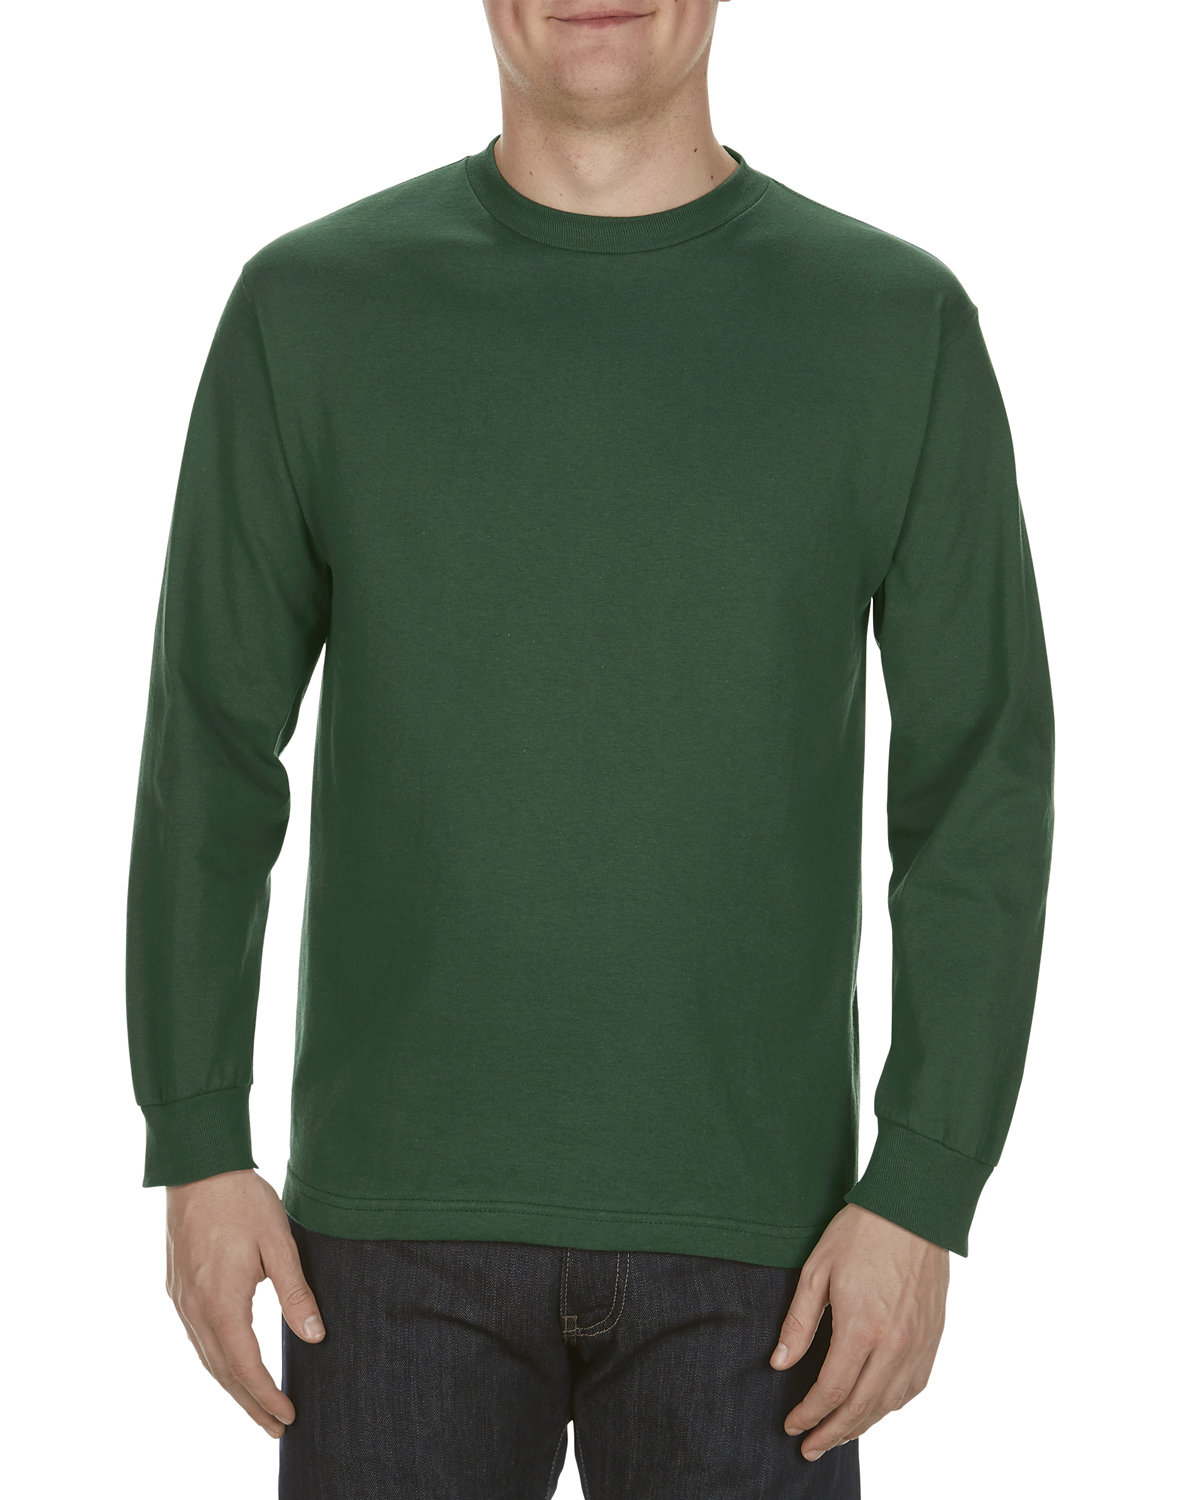 Alstyle Adult 6.0 oz., 100% Cotton Long-Sleeve T-Shirt FOREST GREEN